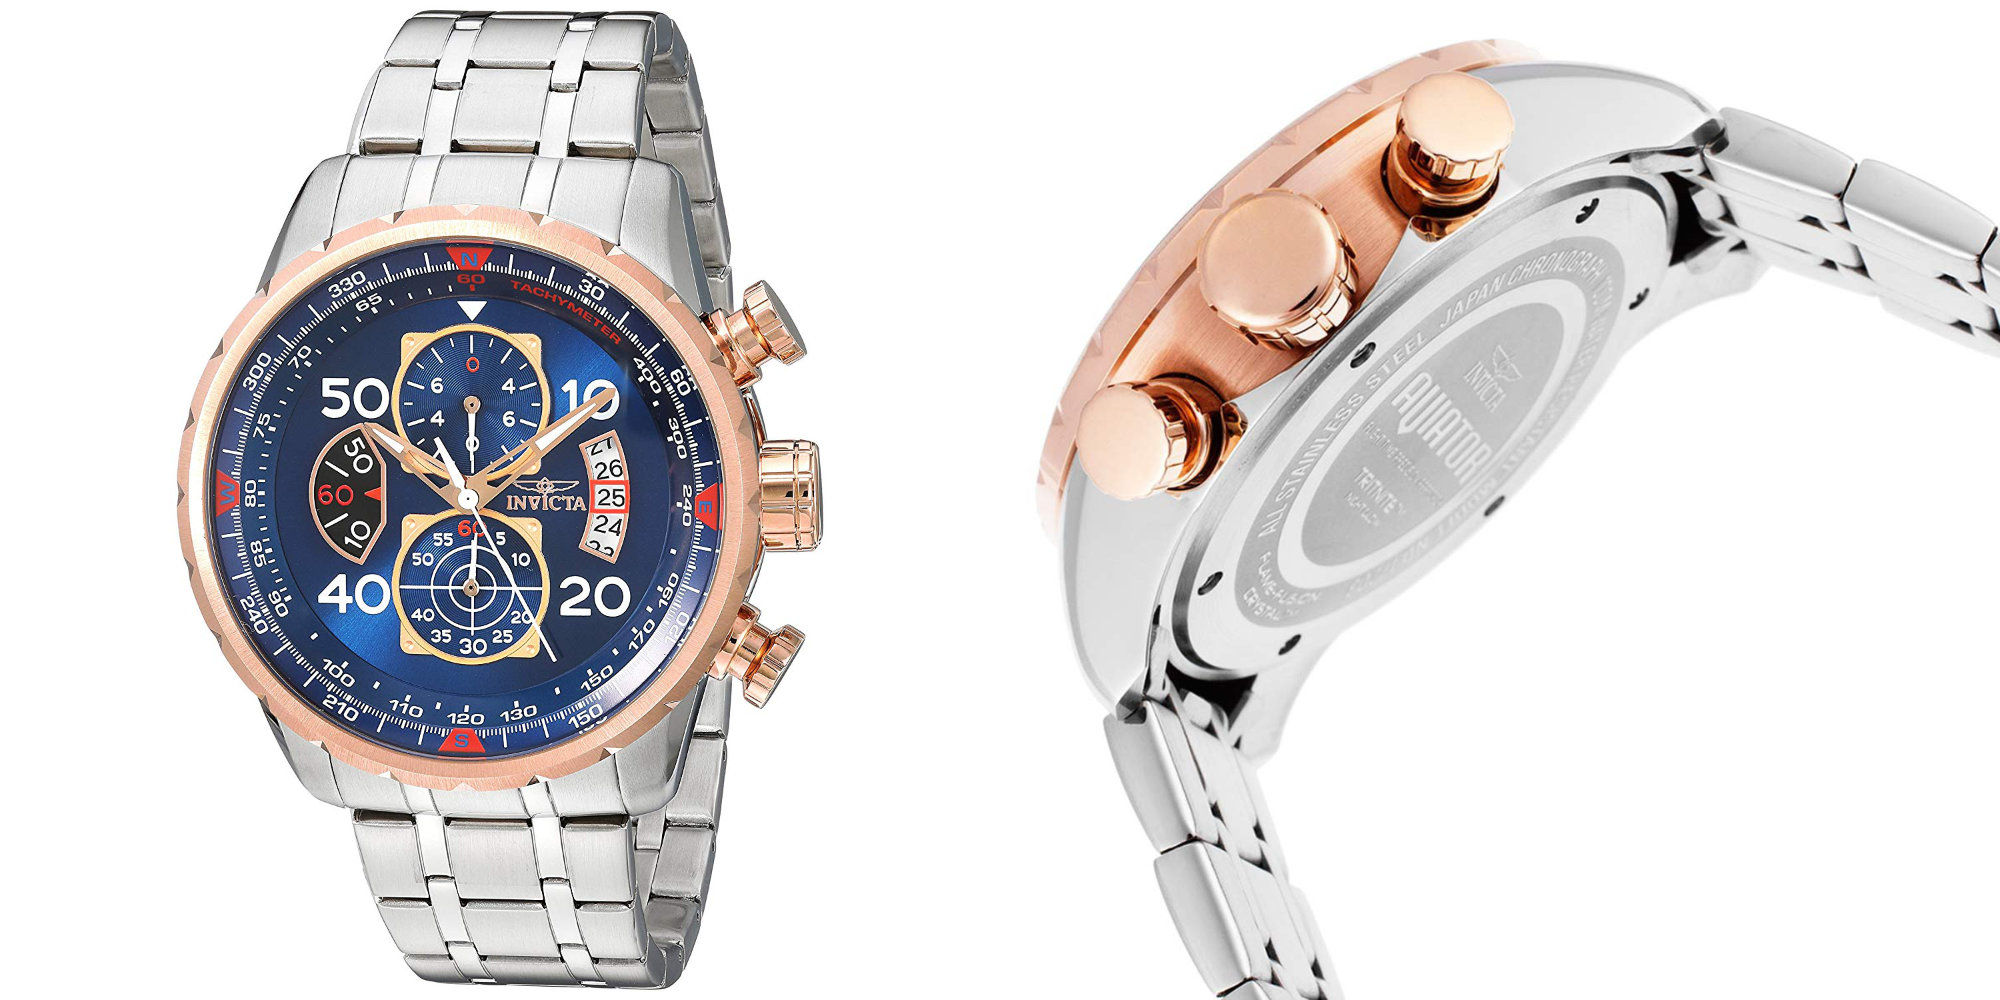 For $55, Invicta's Aviator Watch will put stainless steel and gold on your wrist (Reg. $95)